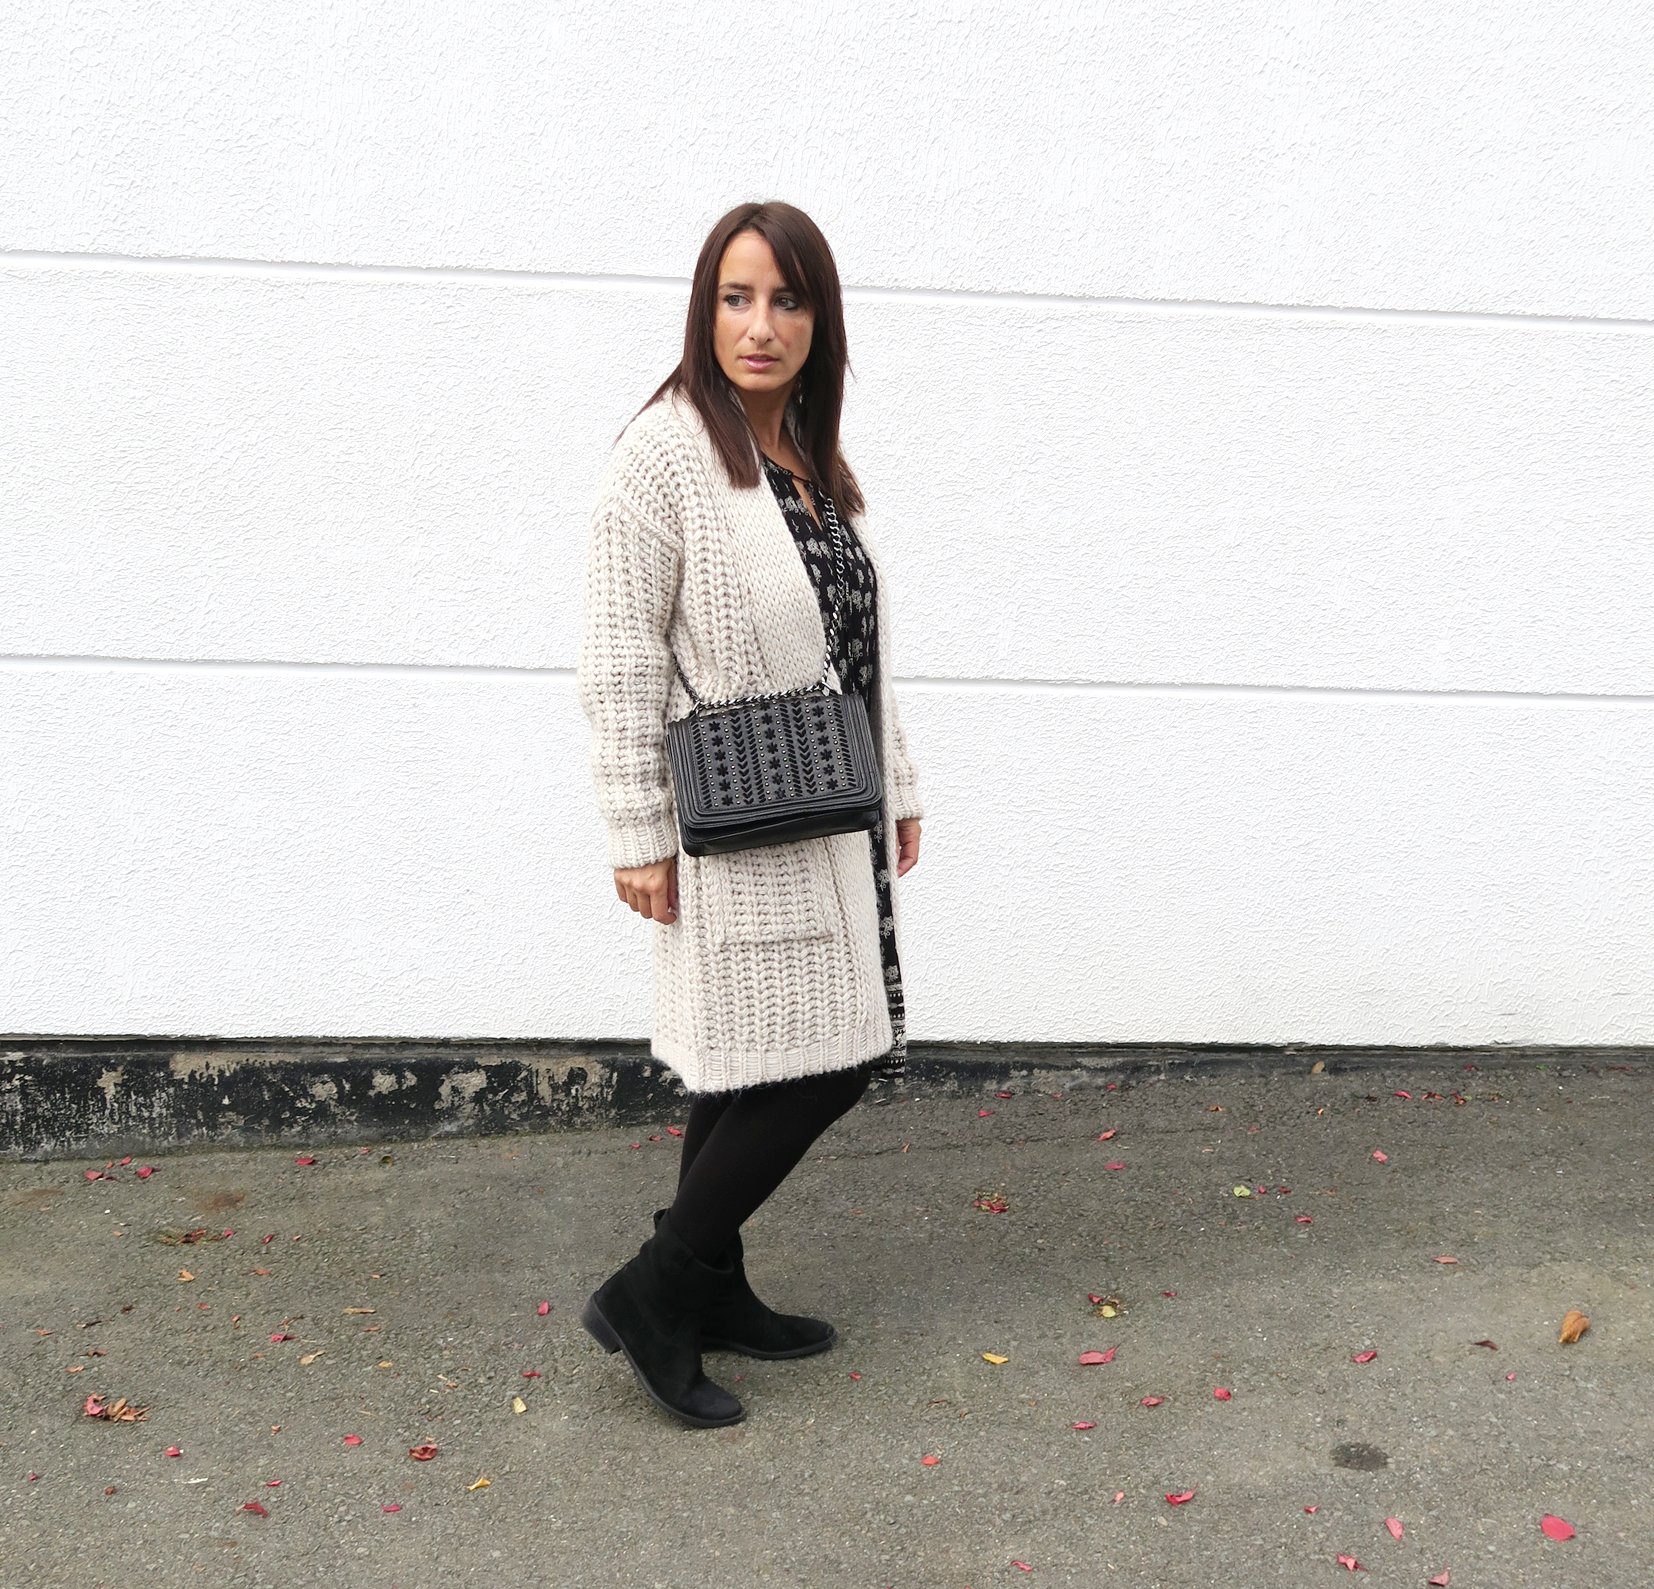 blogger-style-winter-dress-knit-fashionblogger-streetstyle-boots-7